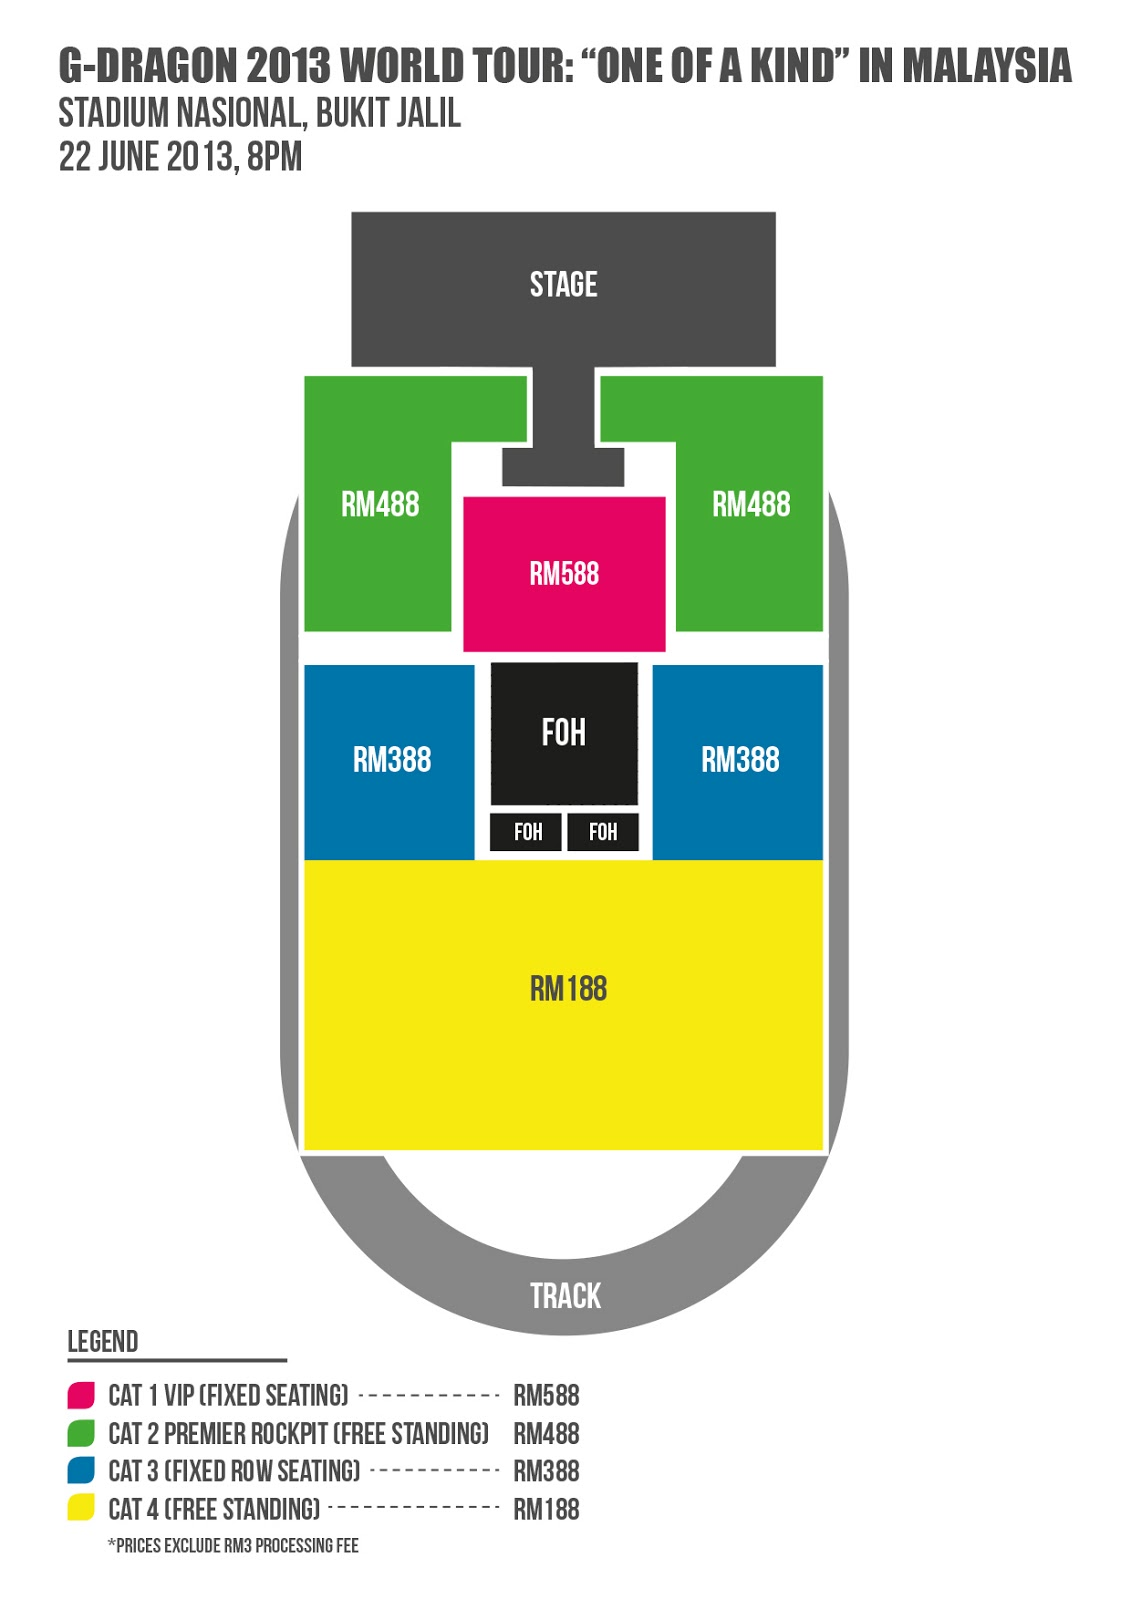 Stadium layout for G-Dragon 2013 World Tour: One Of A Kind in Malaysia at Stadium Nasional, Bukit Jalil, 22 June 2013, 8PM.